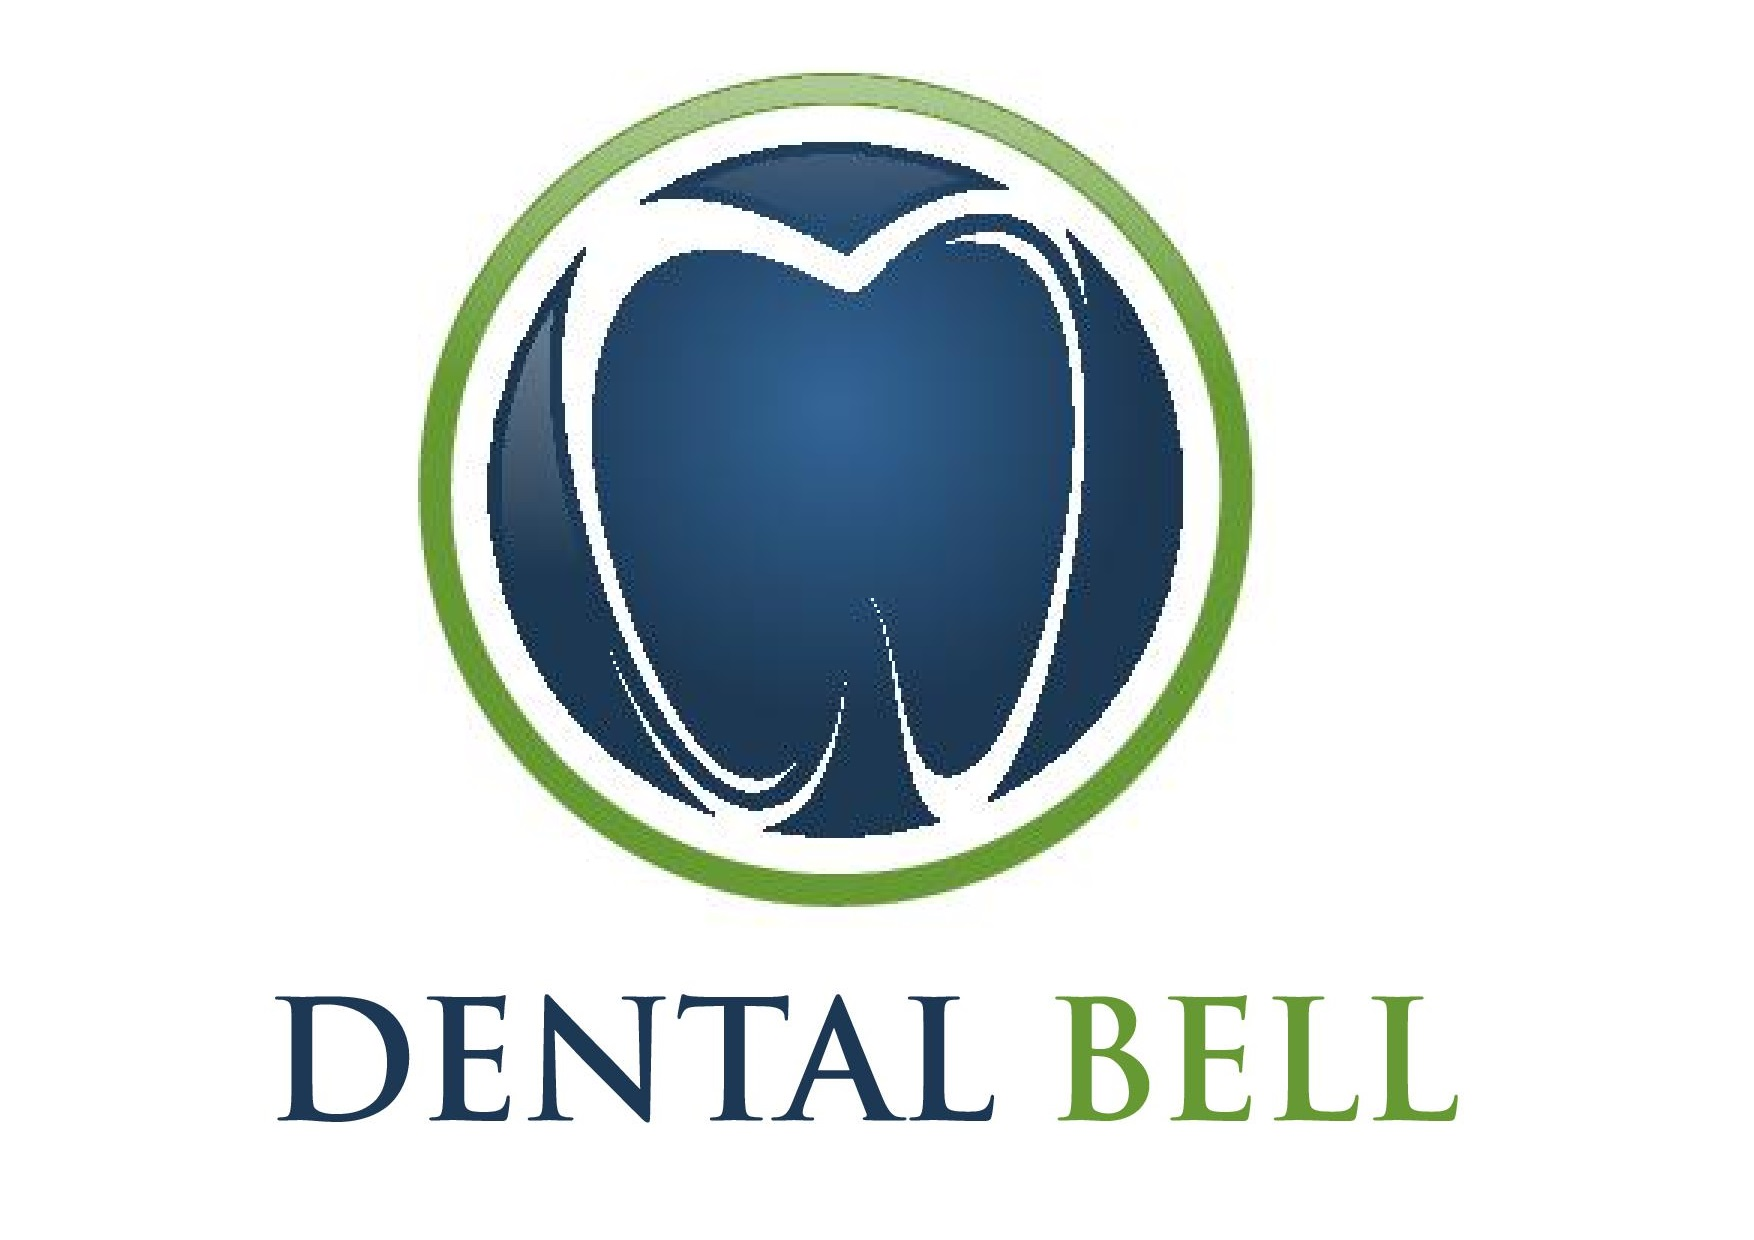 CLÍNICA DENTAL BELL - Dos Hermanas